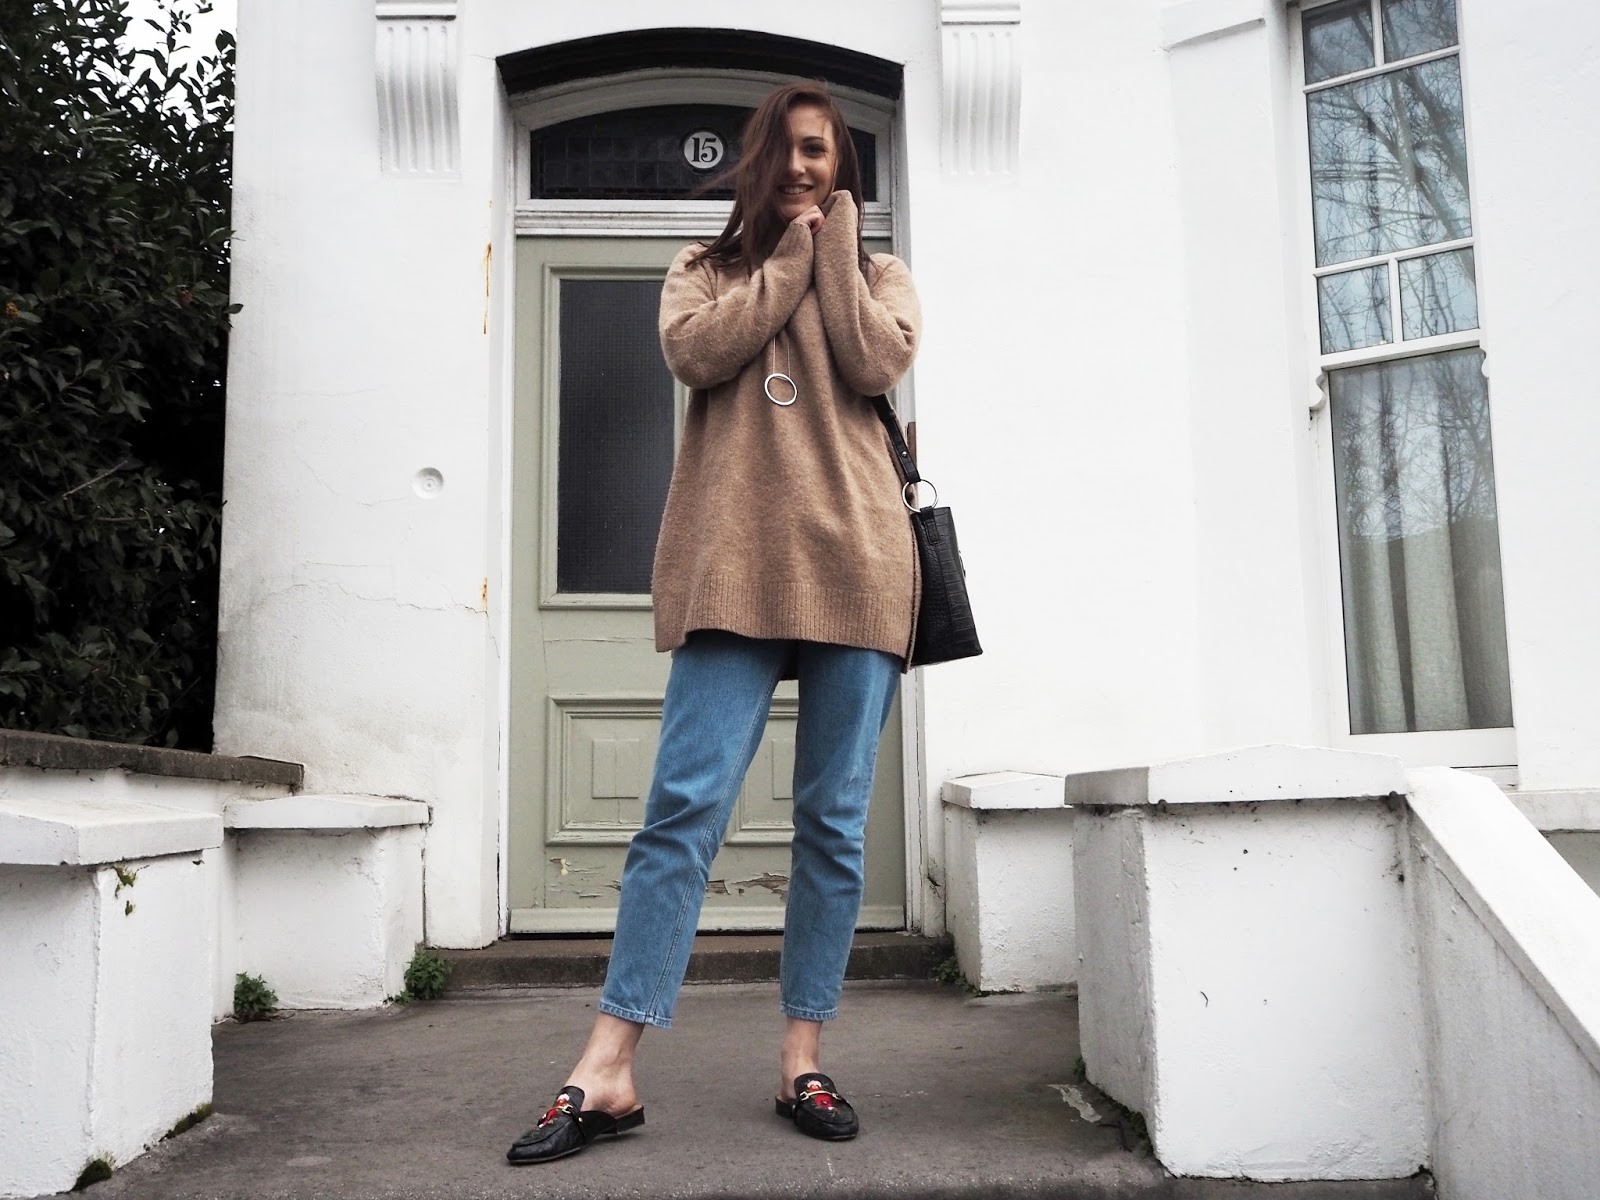 LAUREN ROSE STYLE - ABOUT ME - FASHION AND PERSONAL STYLE BLOG. LONDON